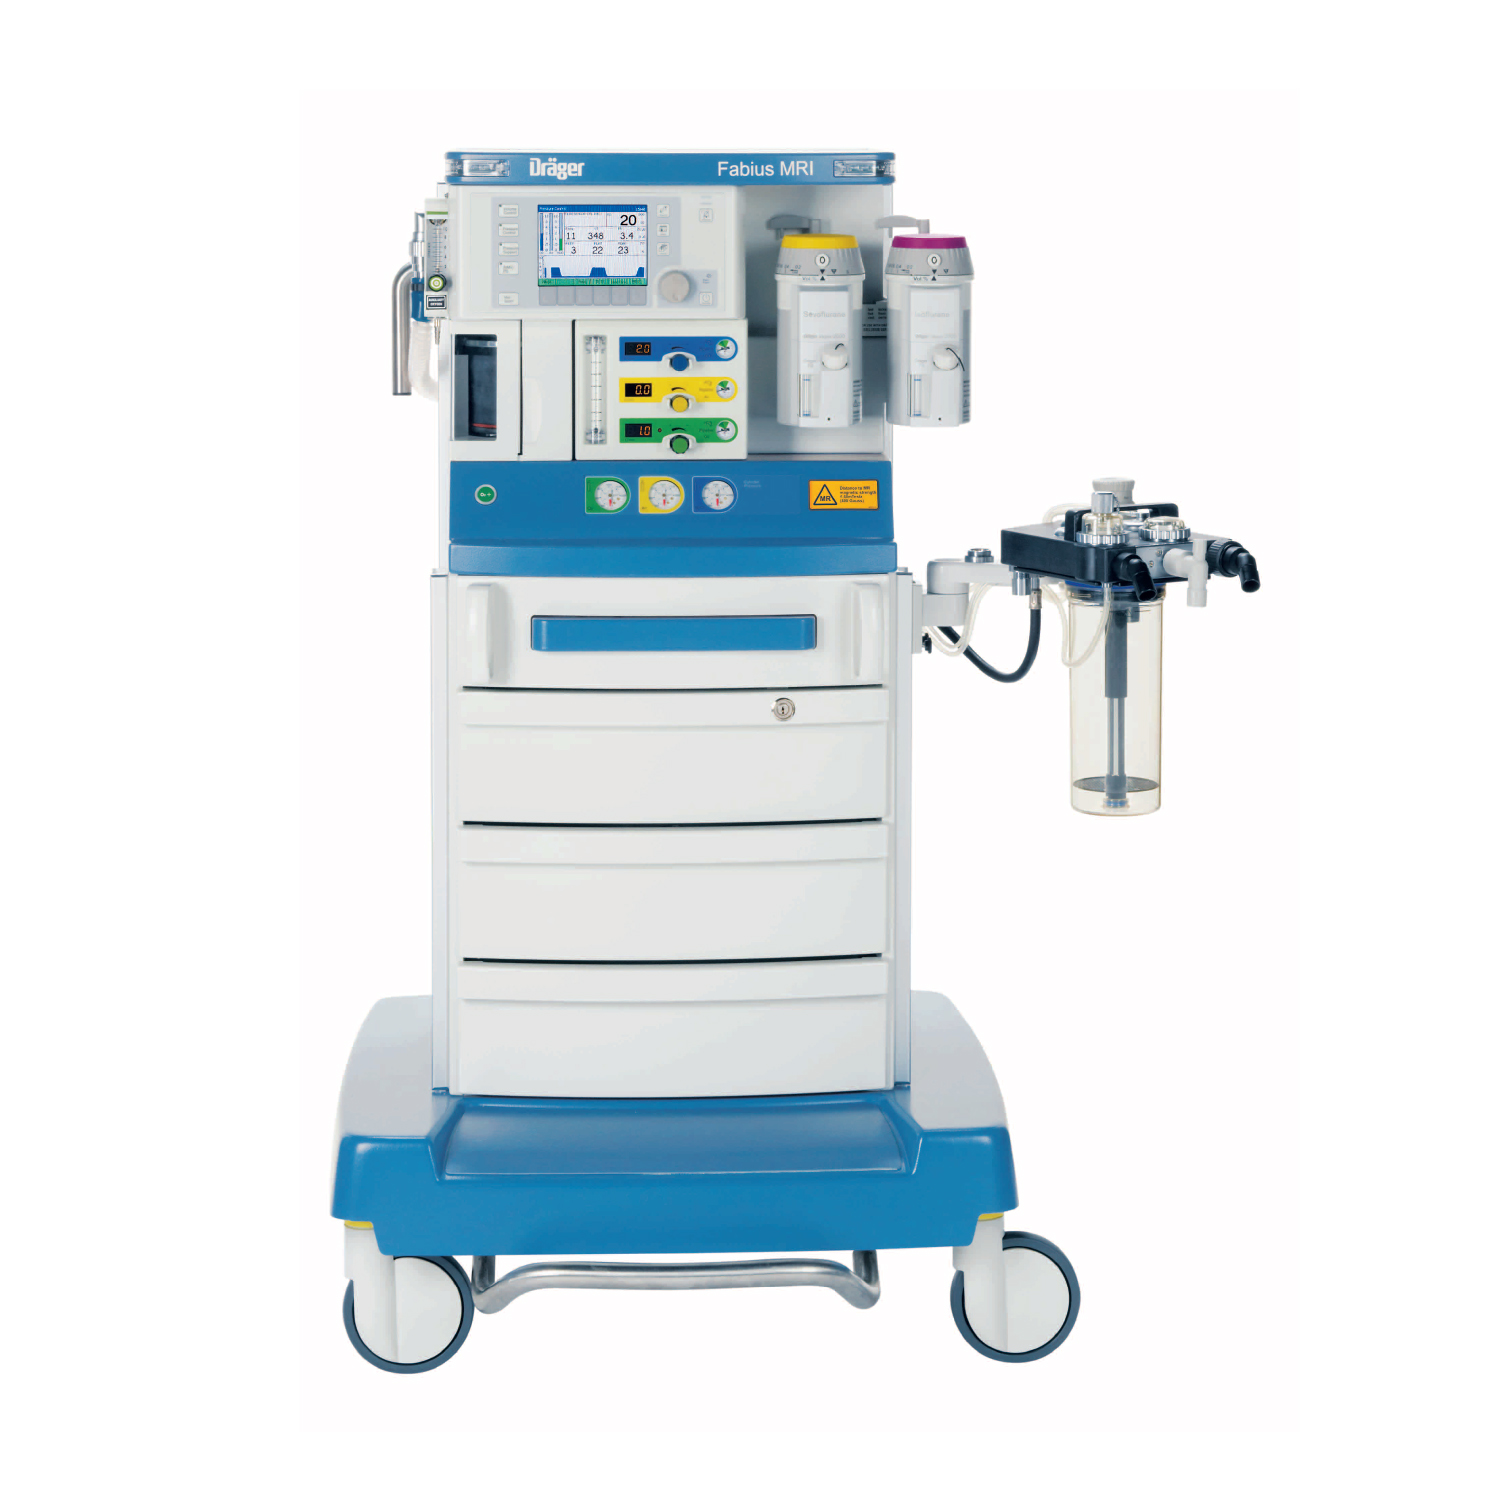 Drager Fabius MRI-Compatible Anesthesia Machine